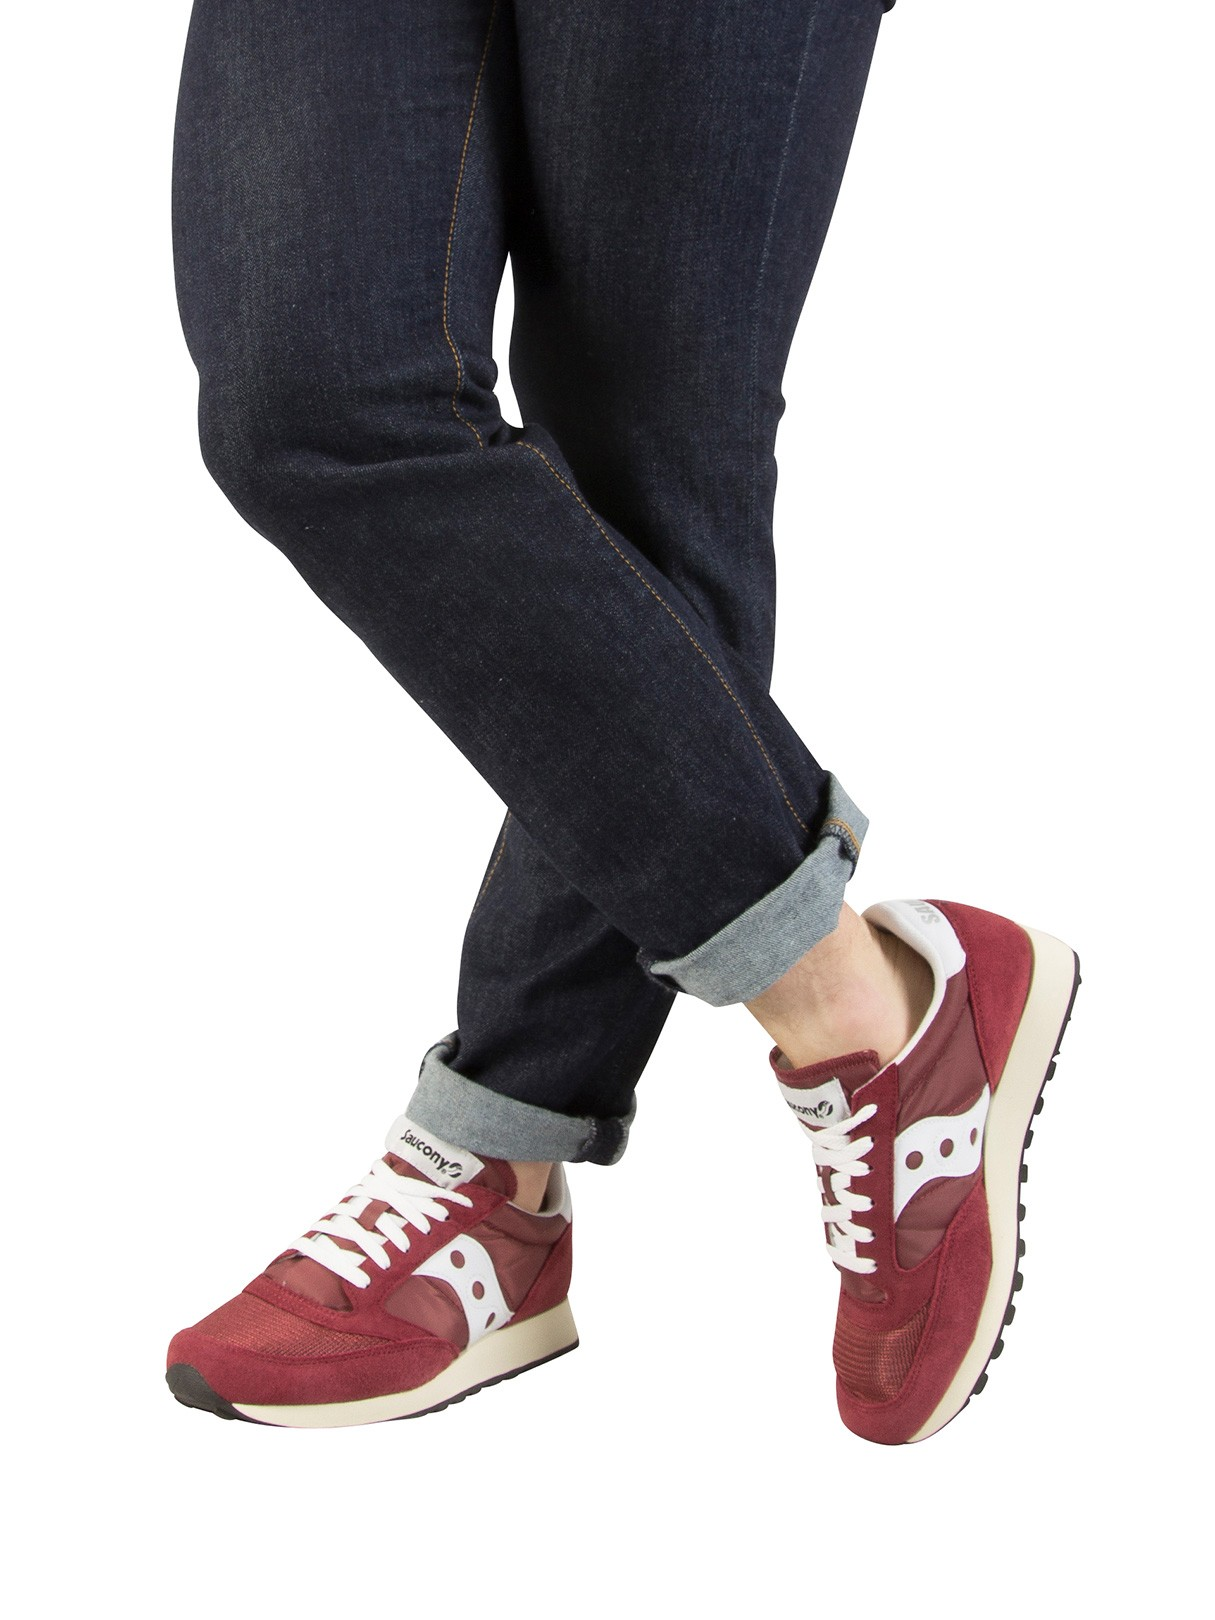 the best attitude 1a6ba 13ca8 Saucony Jazz Original Vintage Trainers - Burgundy/White